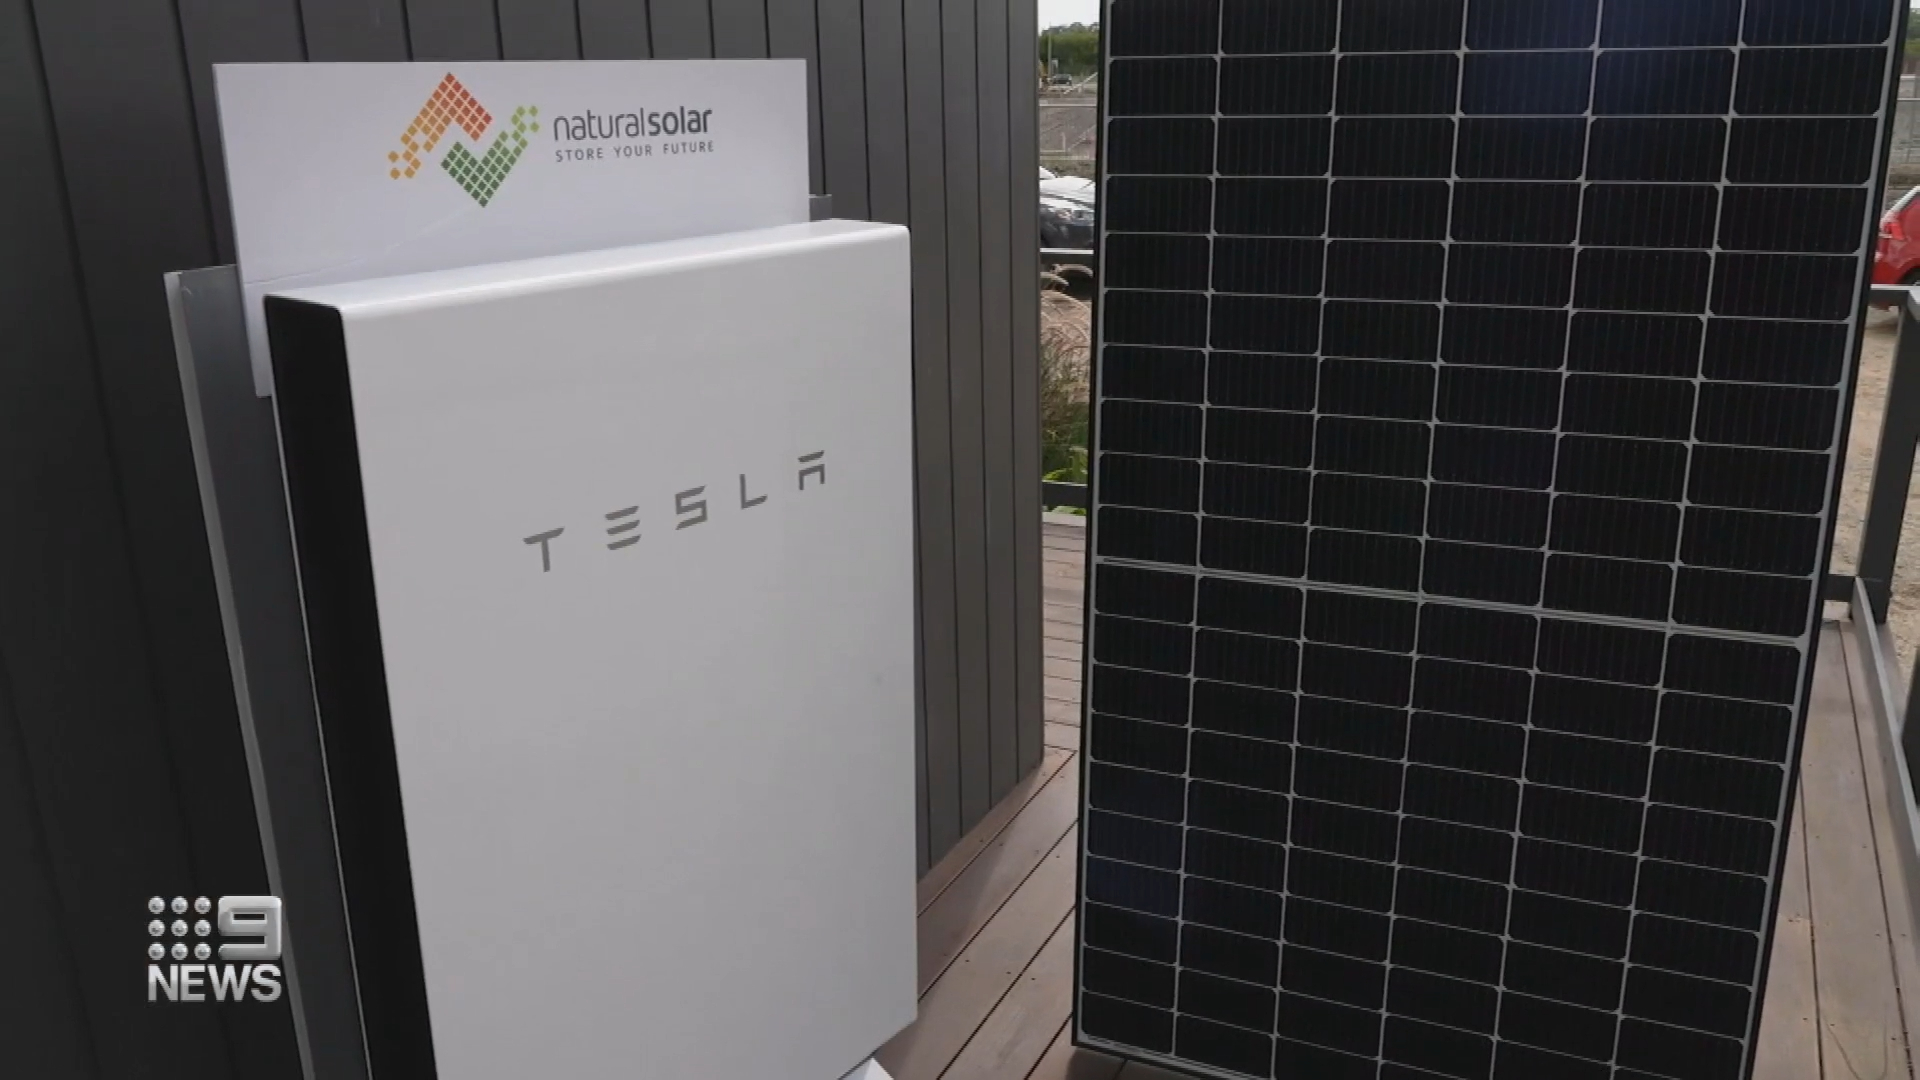 Two Queensland suburban communities to be entirely solar and battery powered